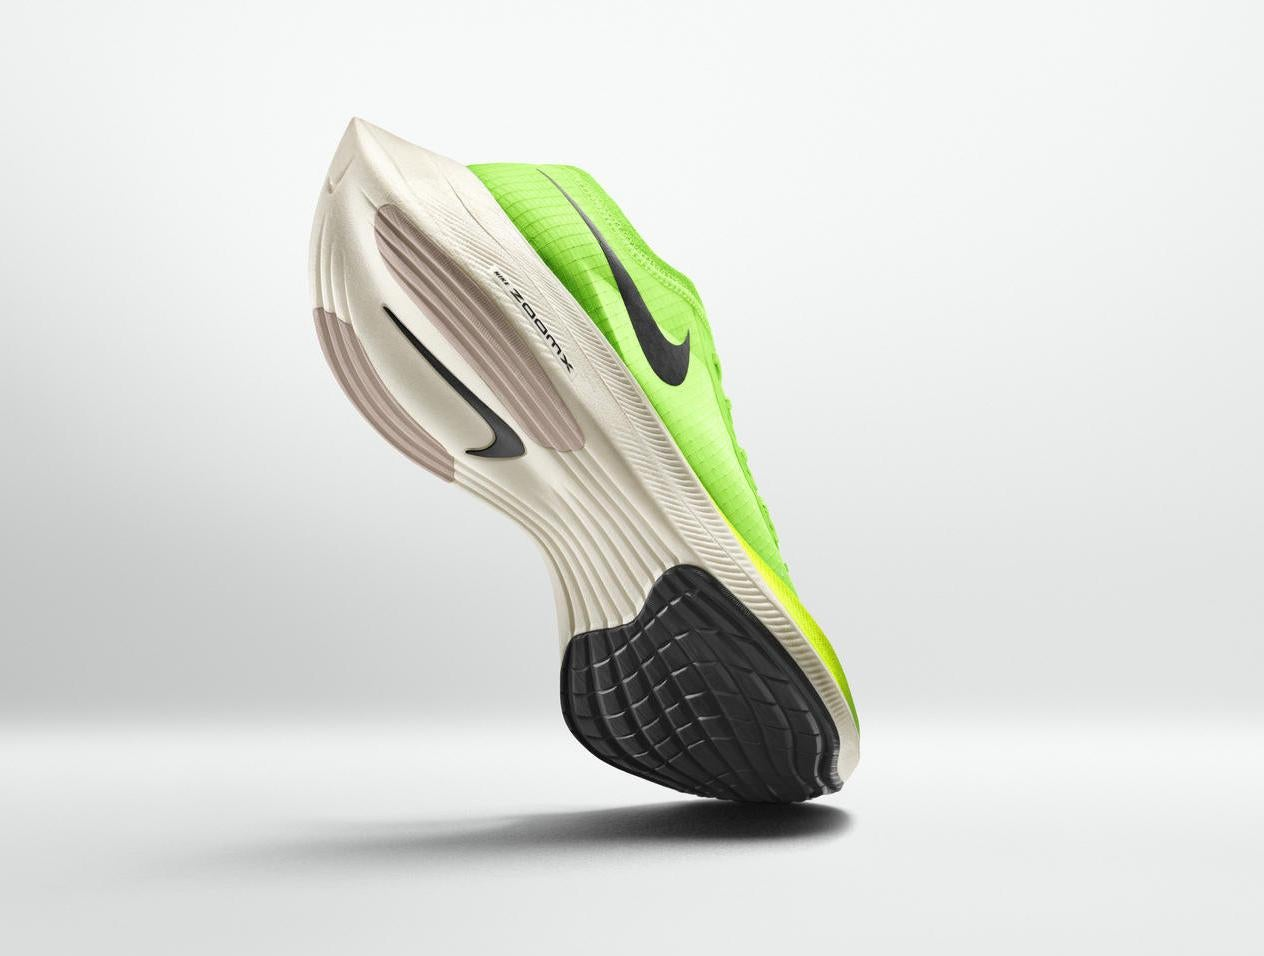 c97459a743ae Nike NEXT%  Marathon running shoe so good it became controversial has been  improved